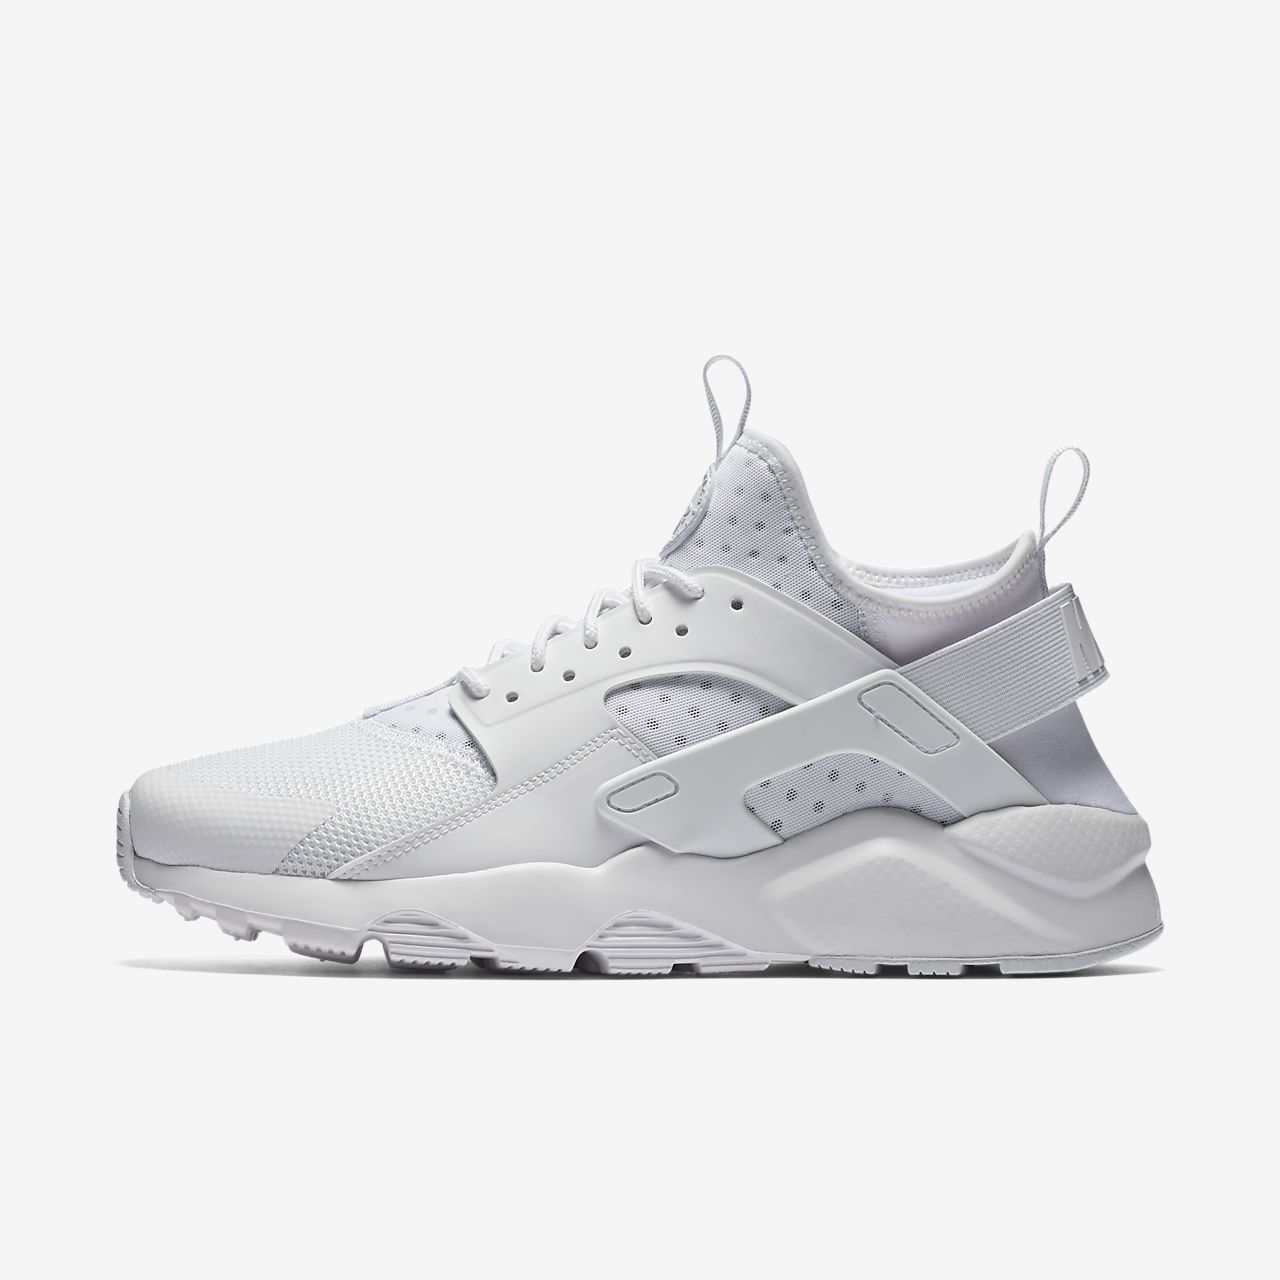 low priced 20156 49c41 ... Calzado para hombre Nike Air Huarache Ultra